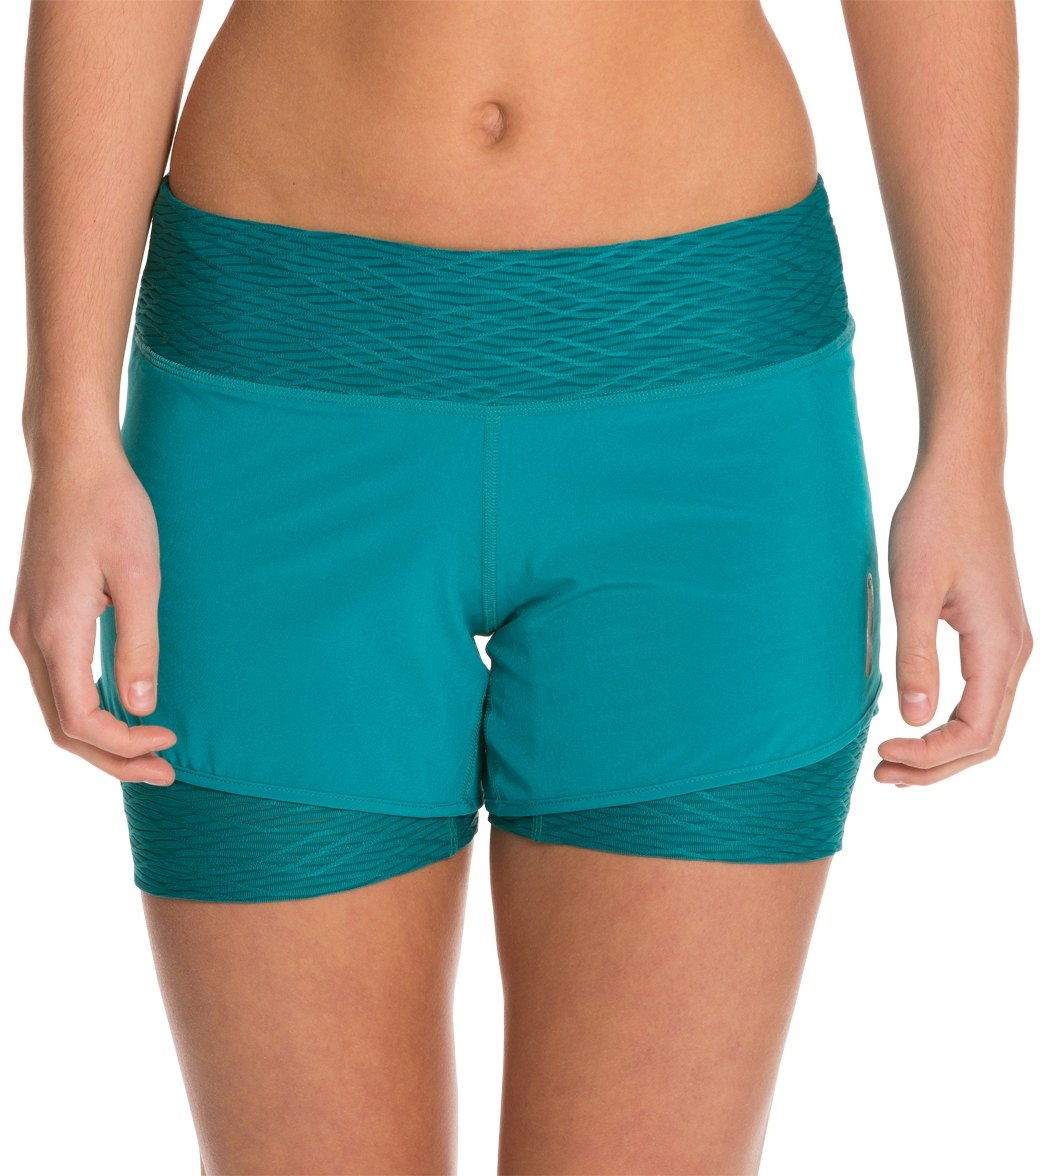 3838ff9aaaa1c Pearl Izumi Women s Flash 2 in 1 Running Short at SwimOutlet.com - Free  Shipping